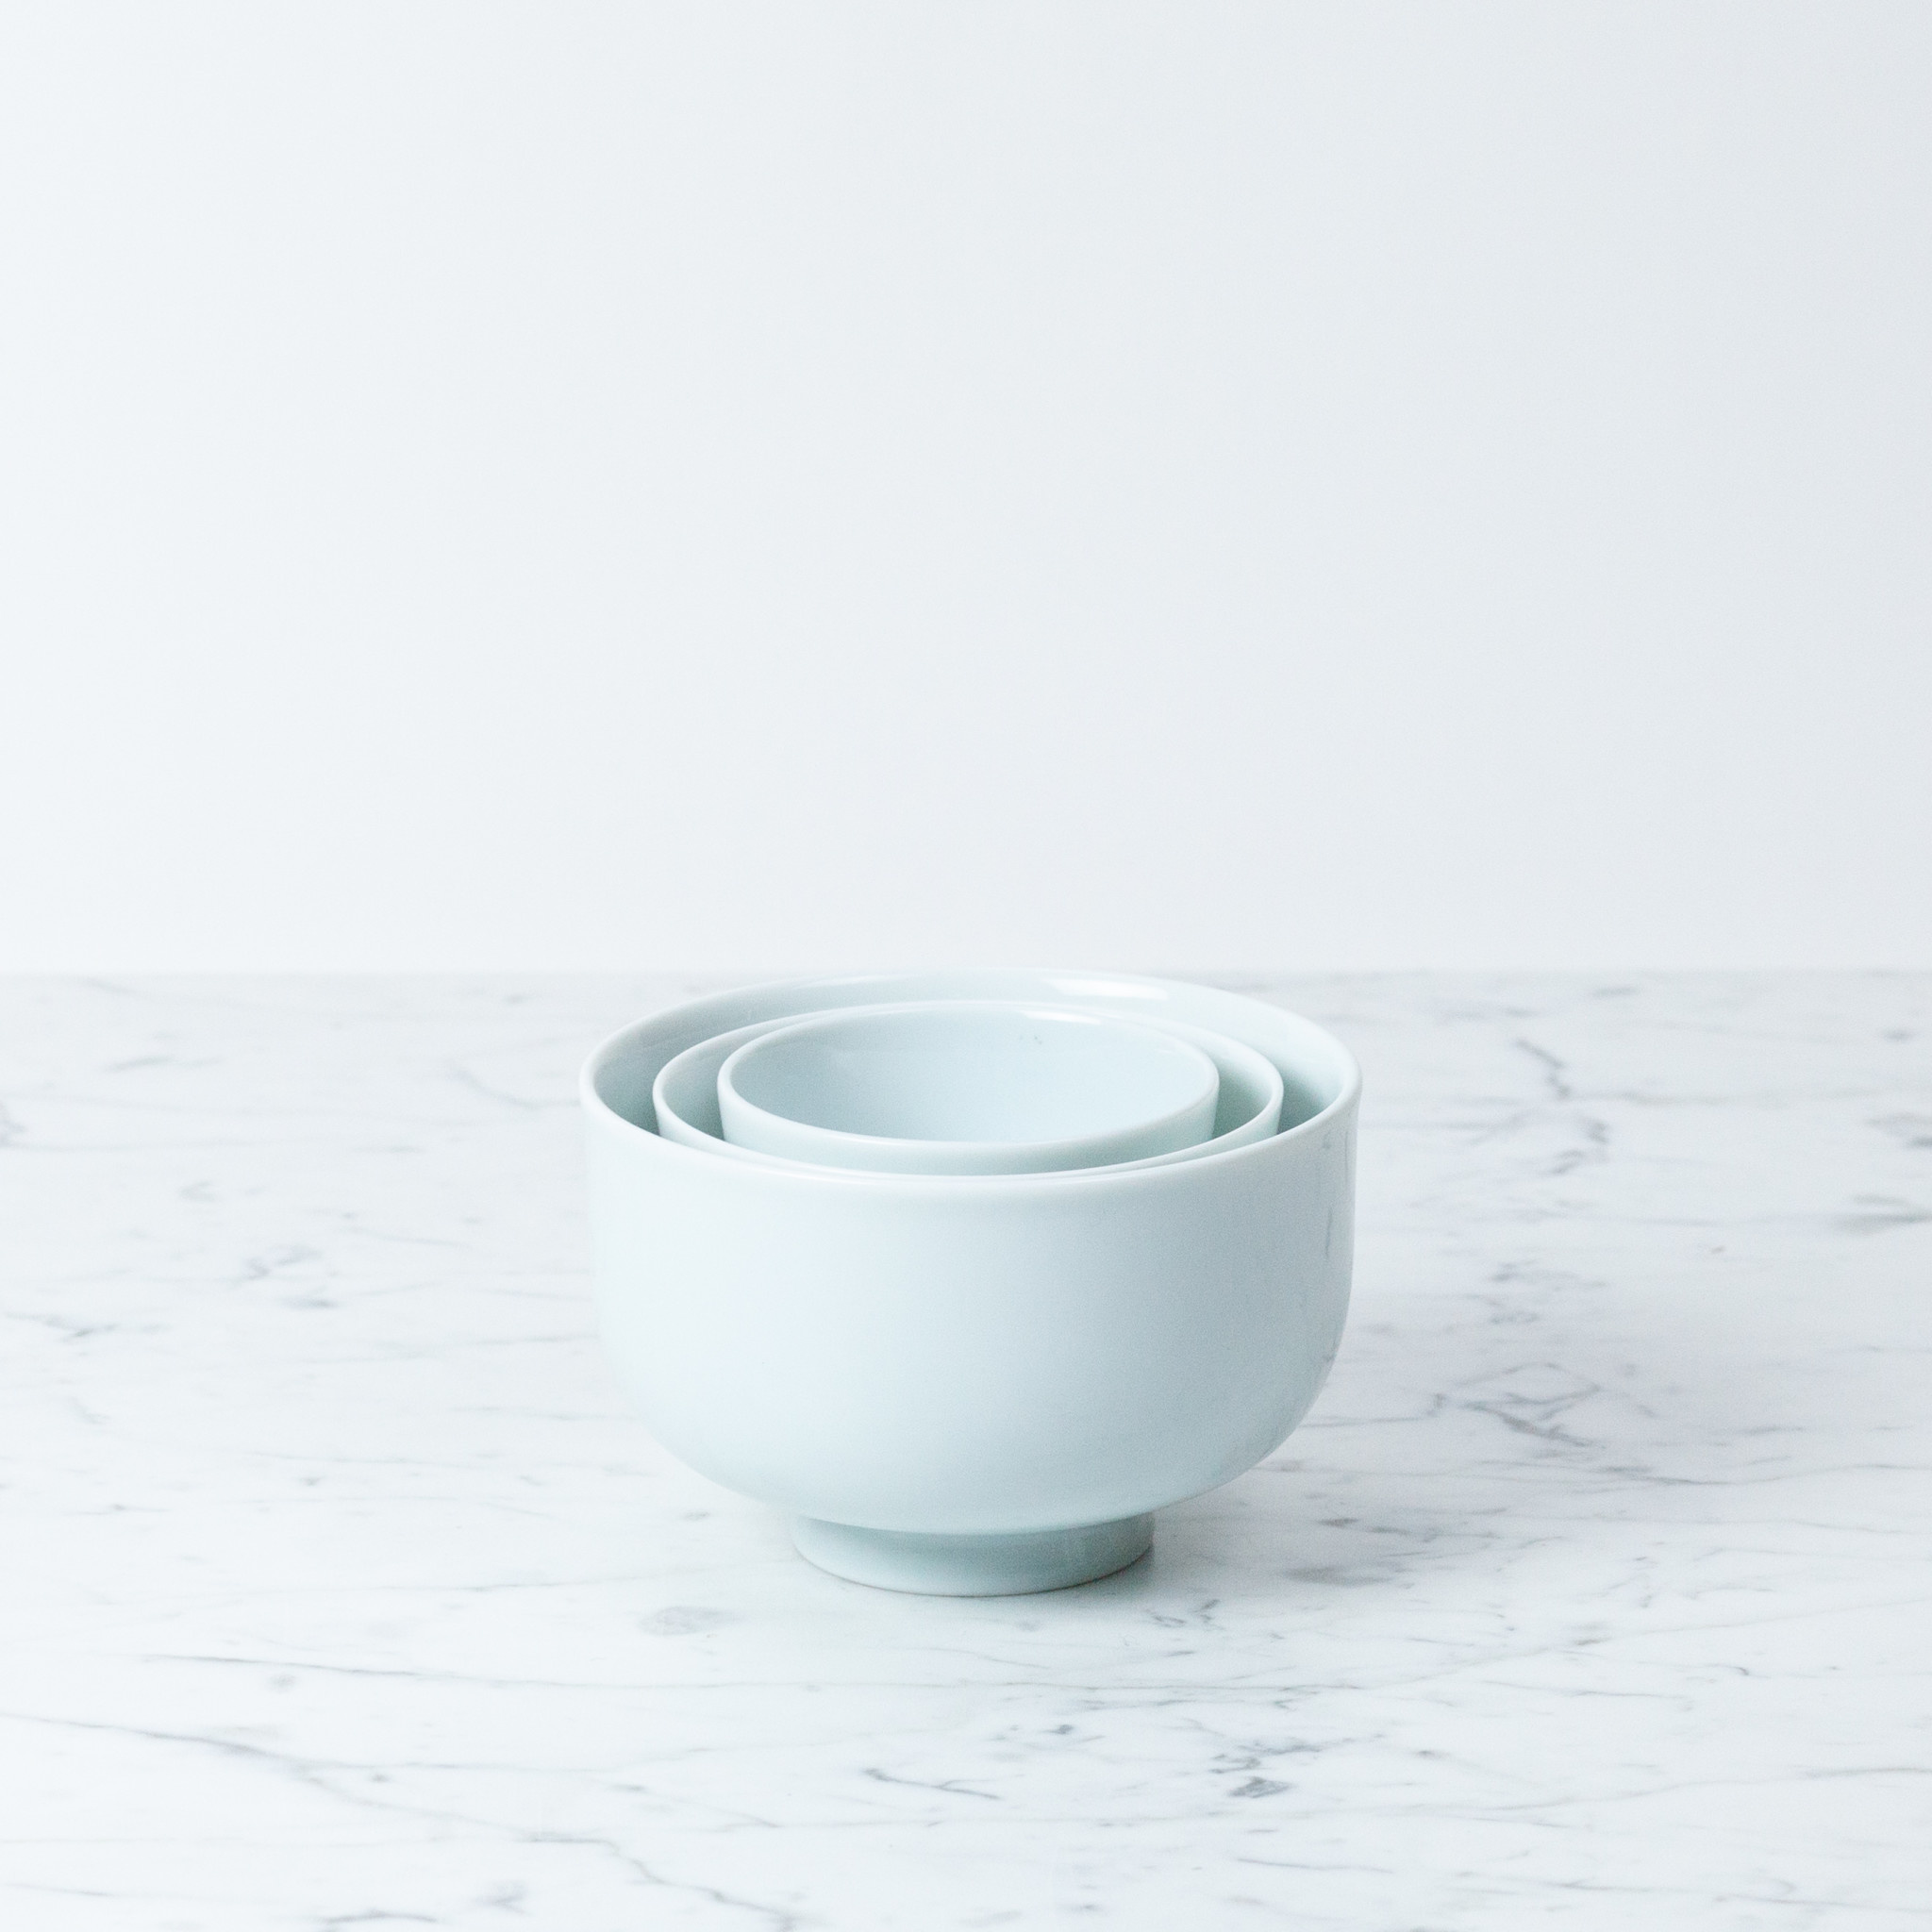 MIZU MIZU mizu-mizu Porcelain Cup with Foot - Bluish White - 3.25""